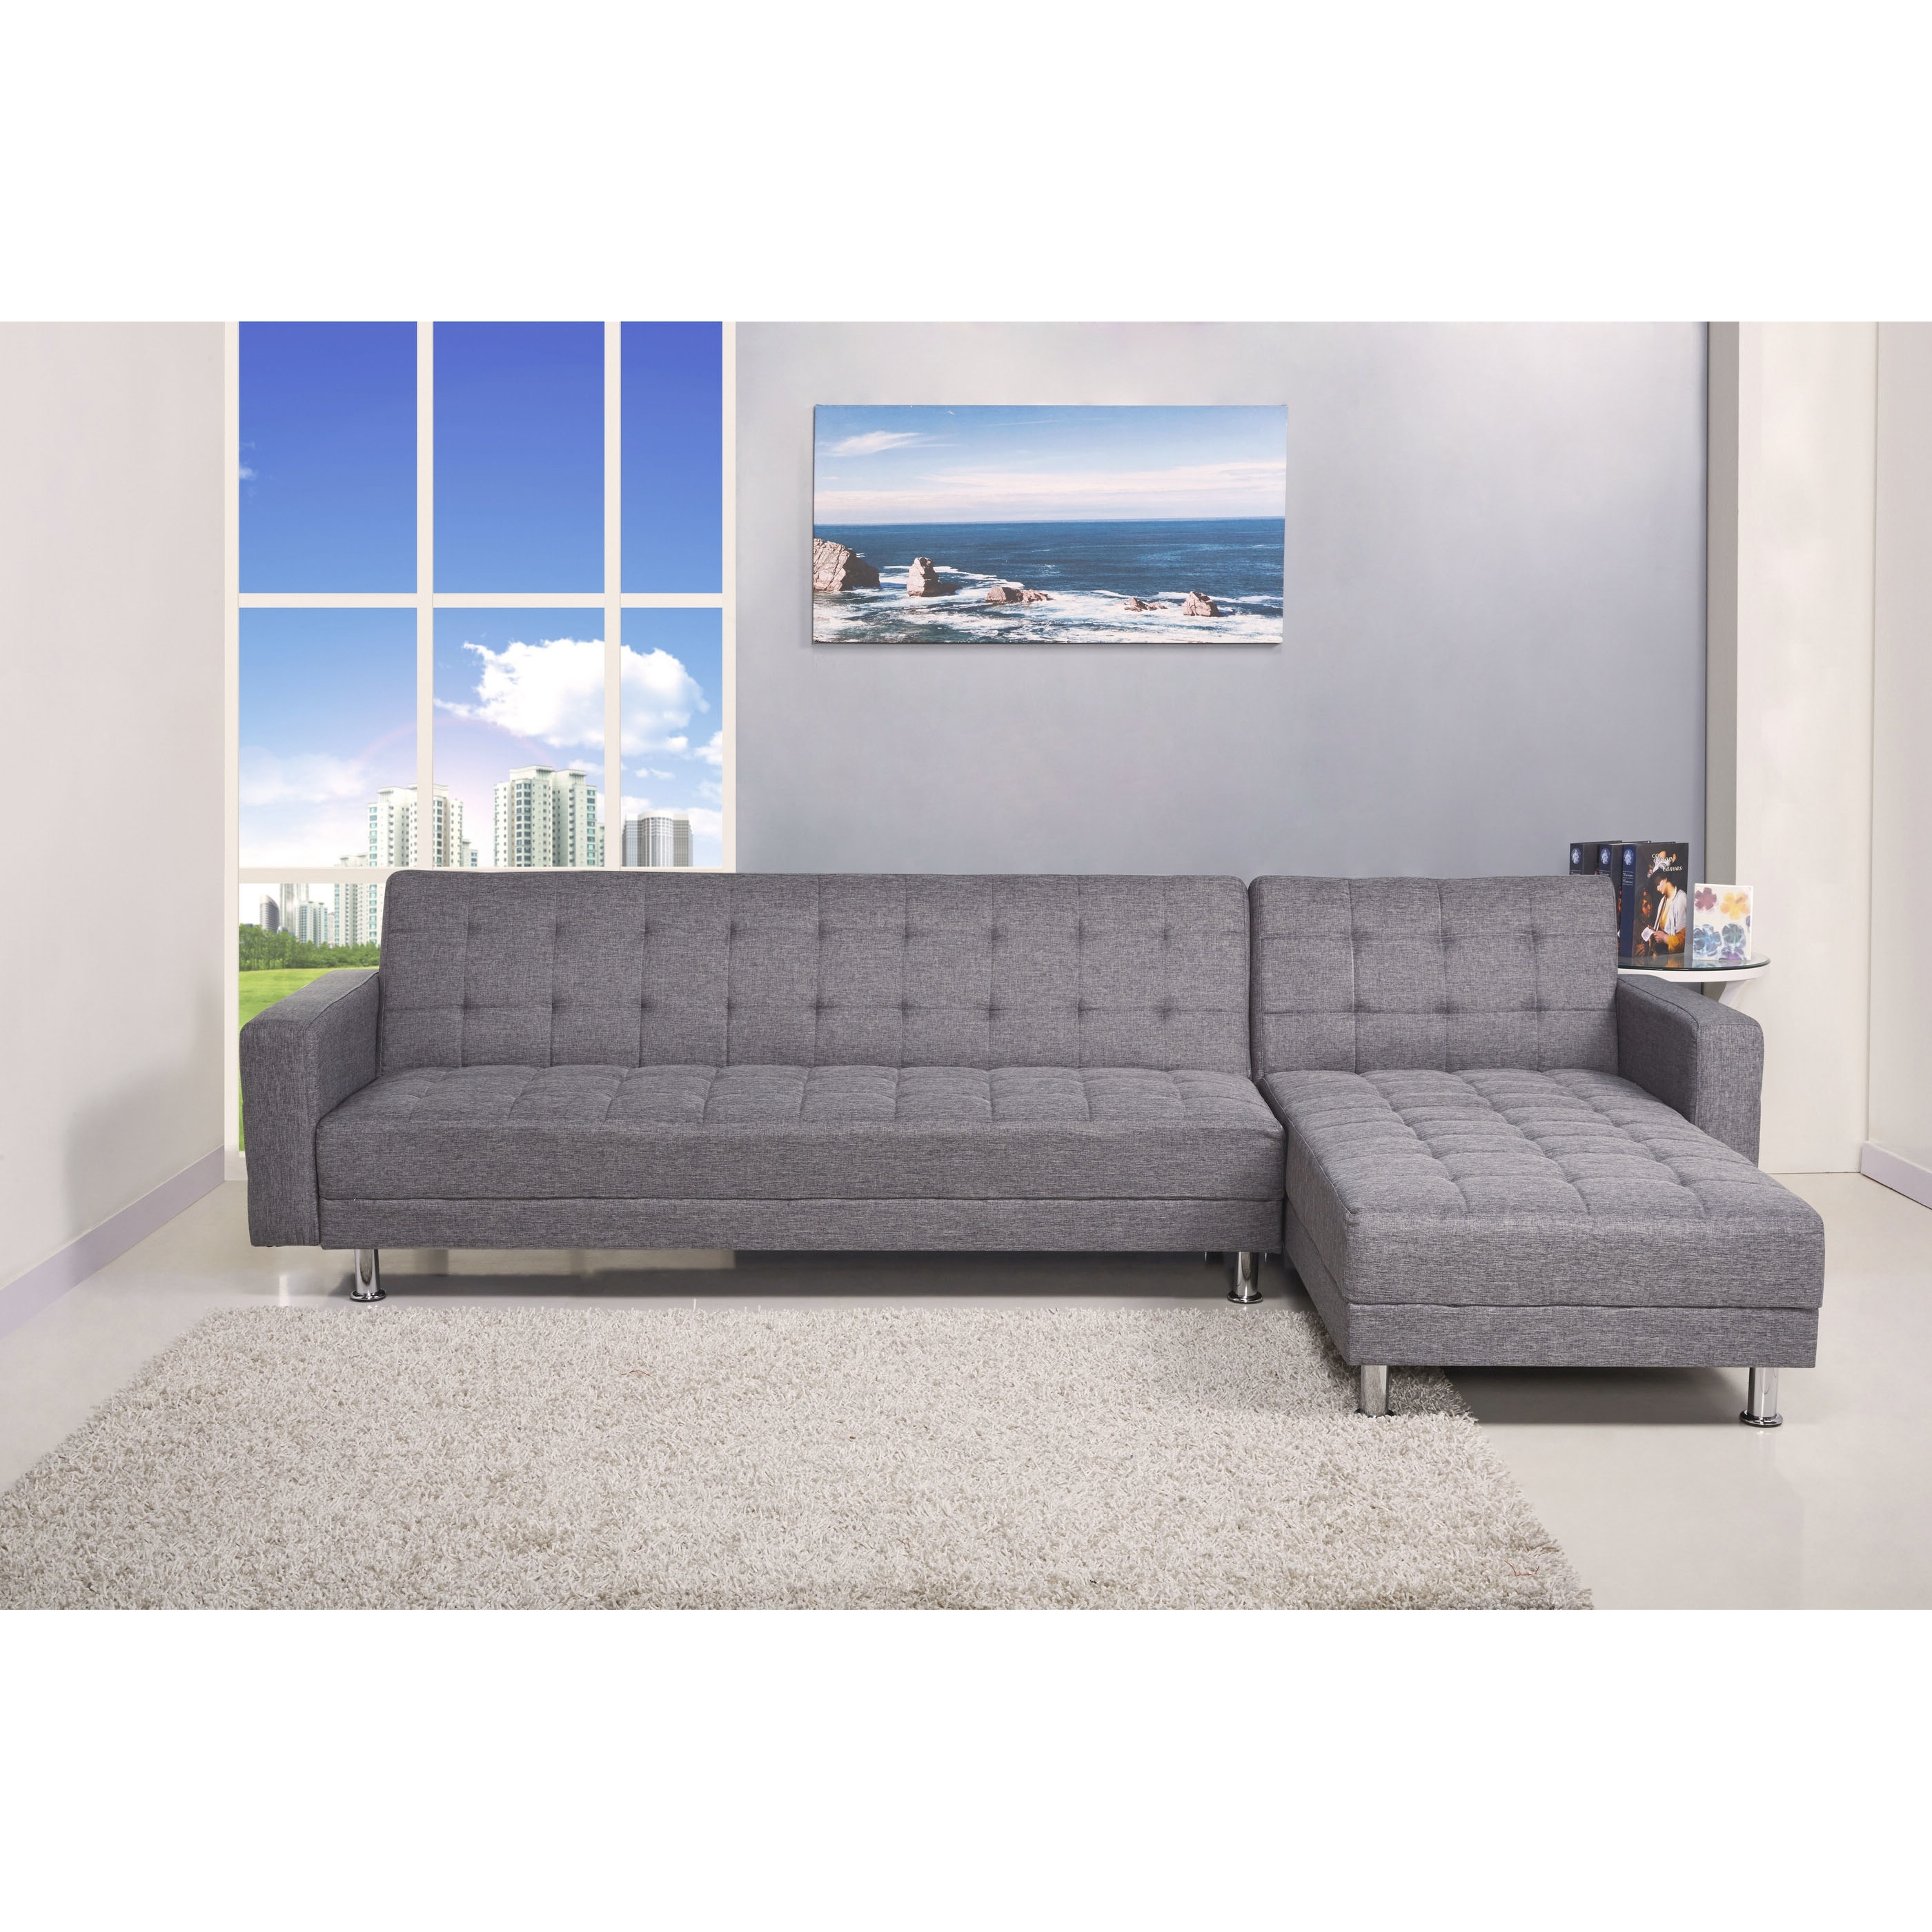 Ikea Sectional Sleeper Sofas With Best And Newest Furniture & Rug: Sectional Sleeper Sofa (View 7 of 20)